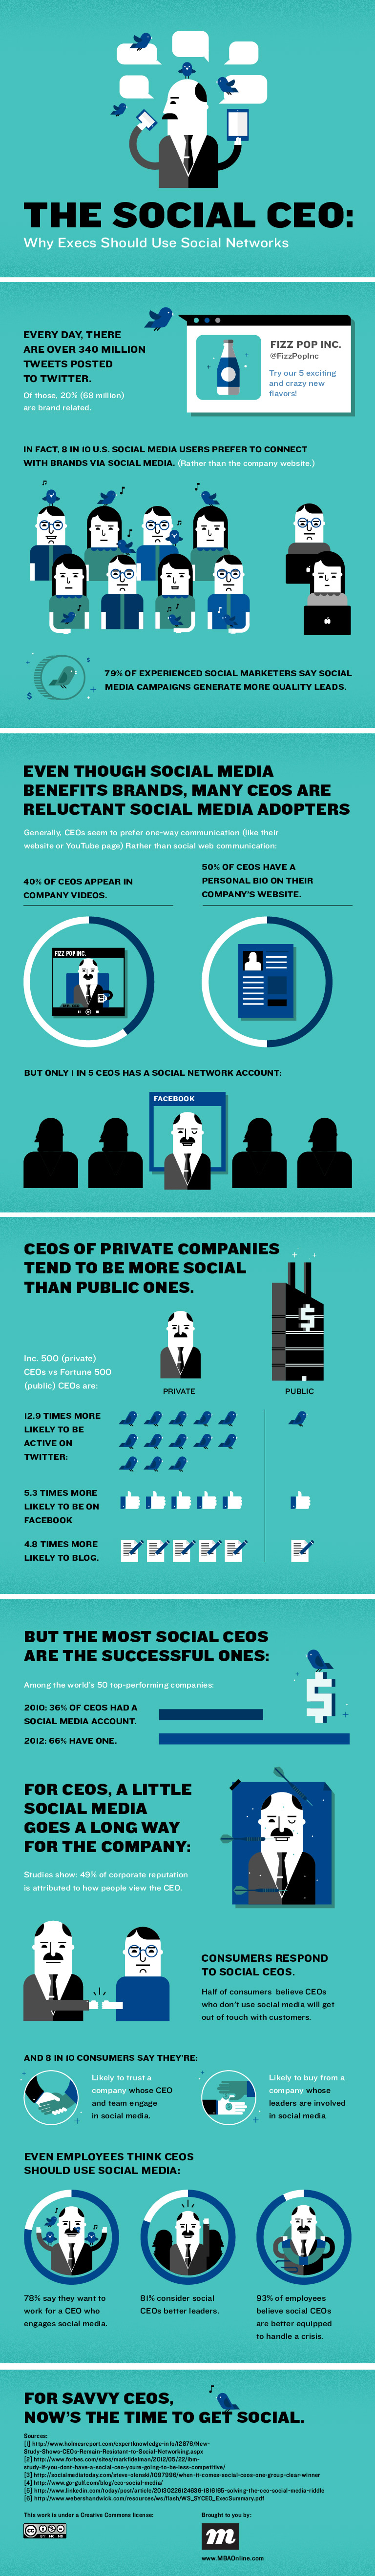 Why ceos should use social media infographic sns infographic